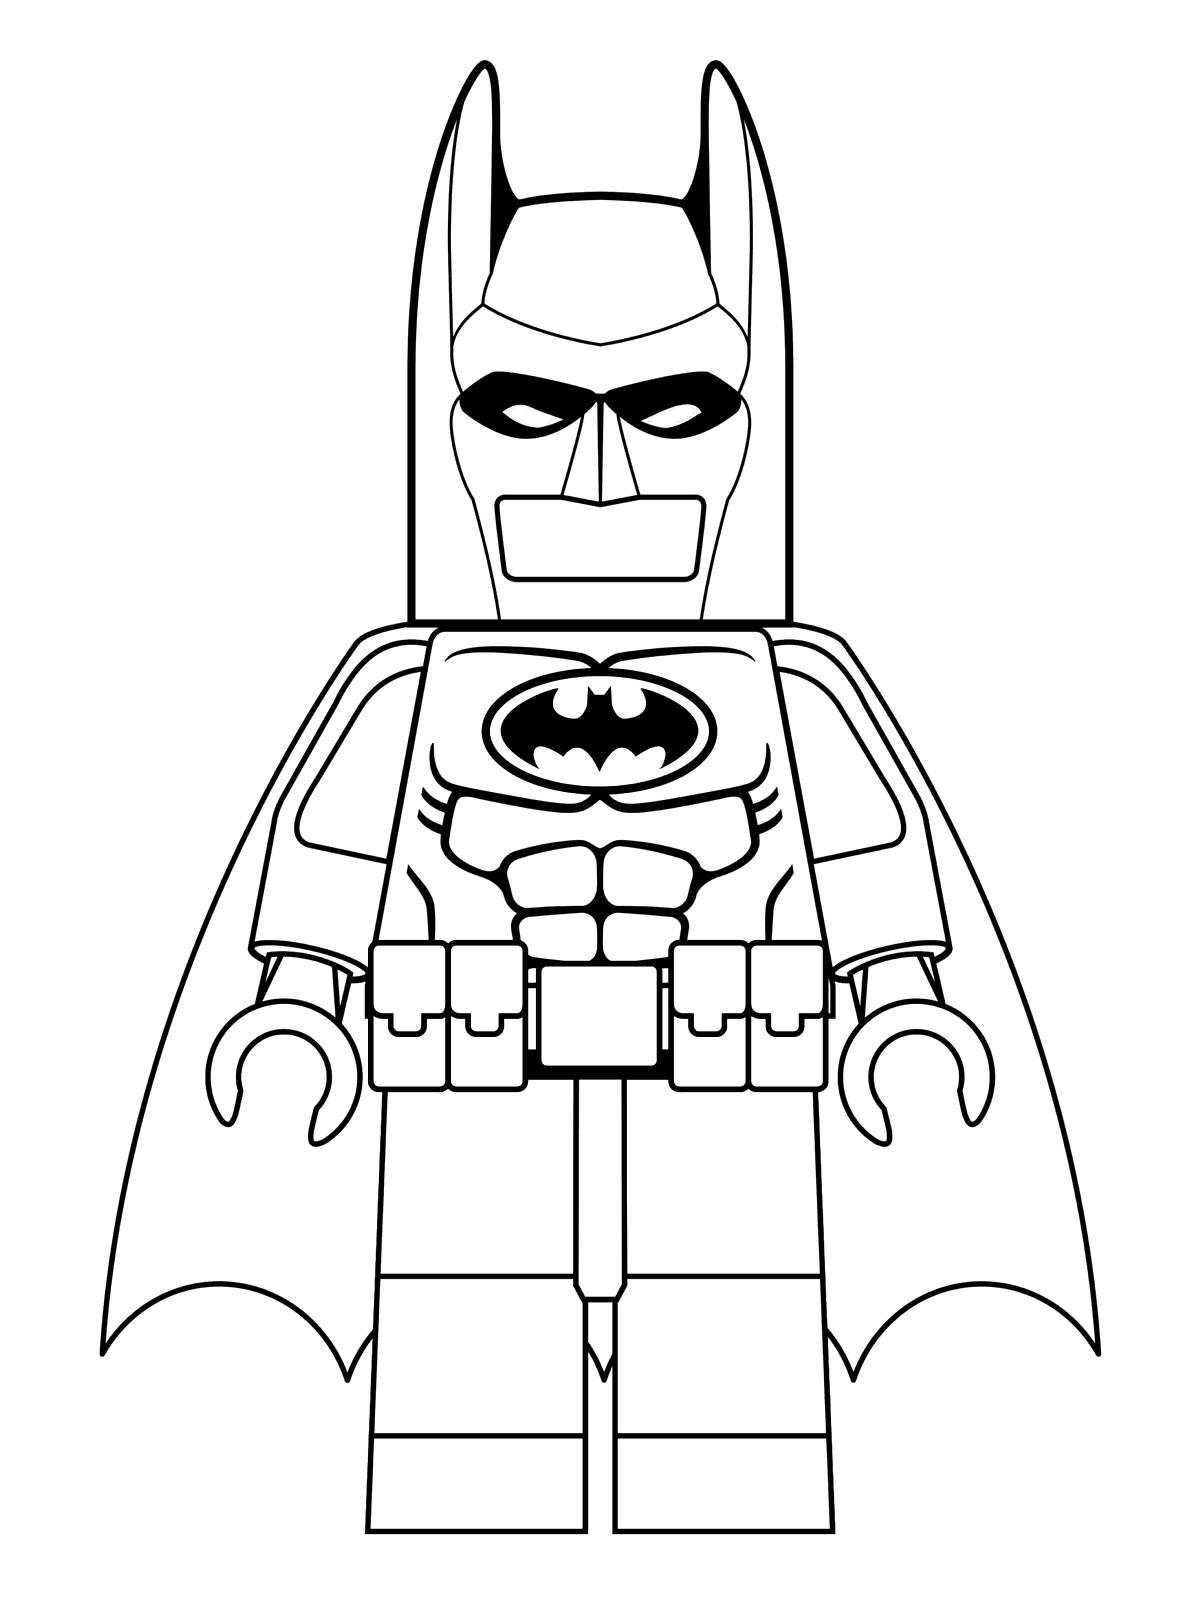 I Am Lego Batman Coloring Pages Lego Movie Coloring Pages Lego Coloring Pages Superhero Coloring